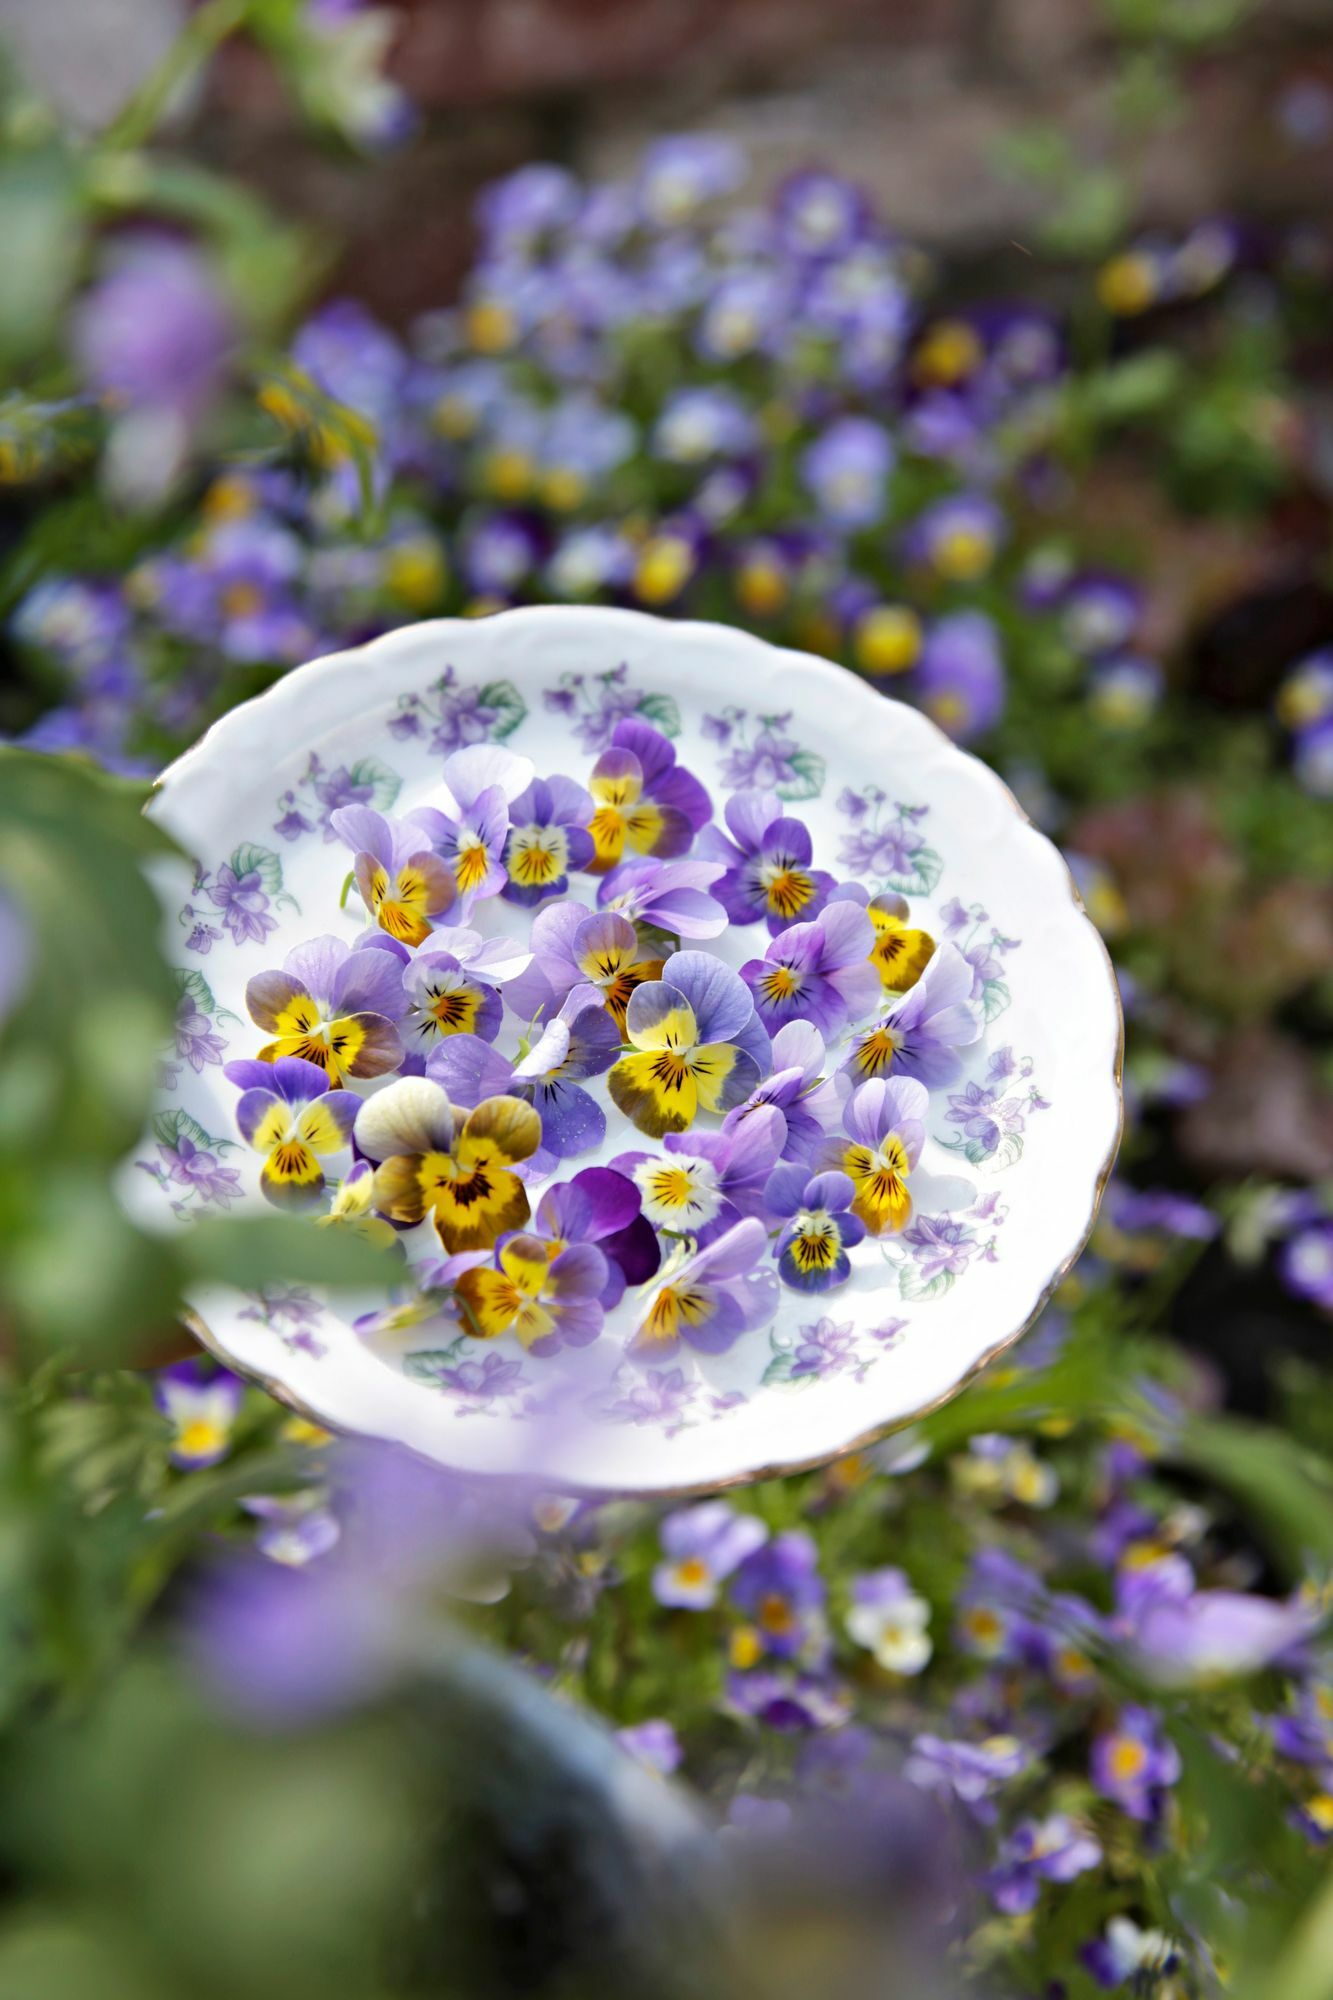 There are surprisingly many edible flowers!  The flavors range from the gentle sweetness of the violets to the hotness of the cress.